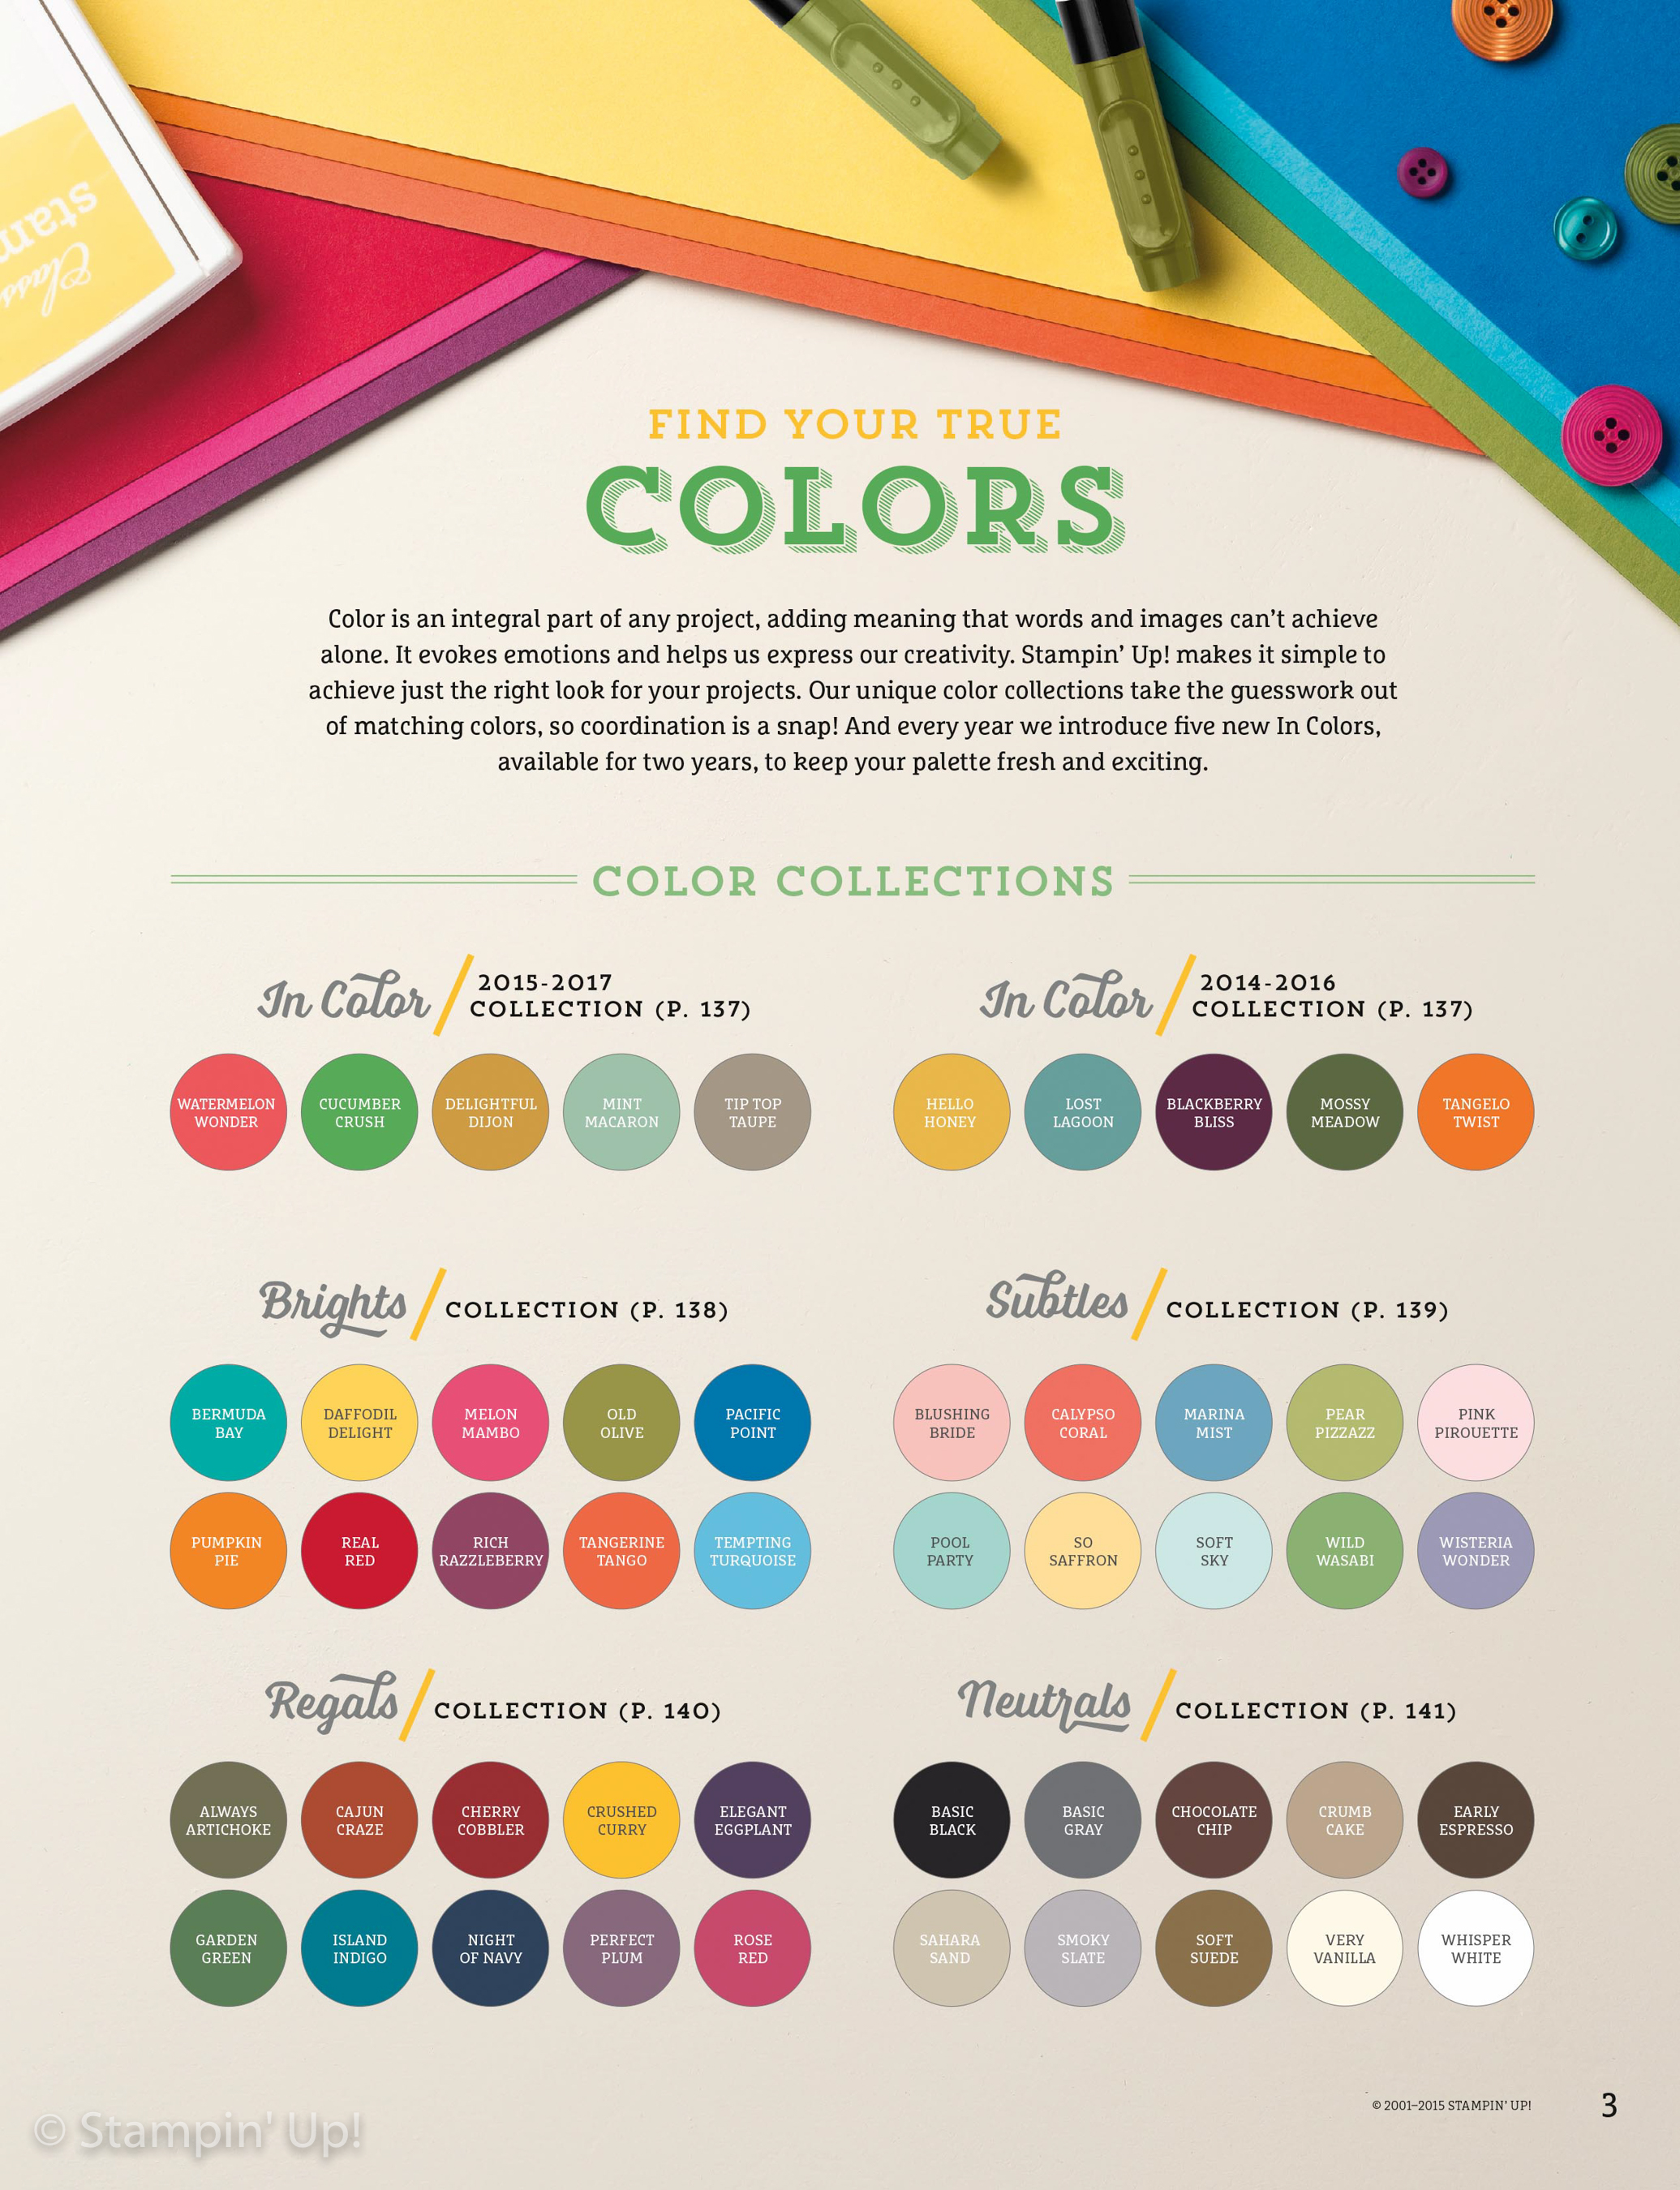 Have You Seen Stampin' Up!'s Color Collections? | Stamping ...